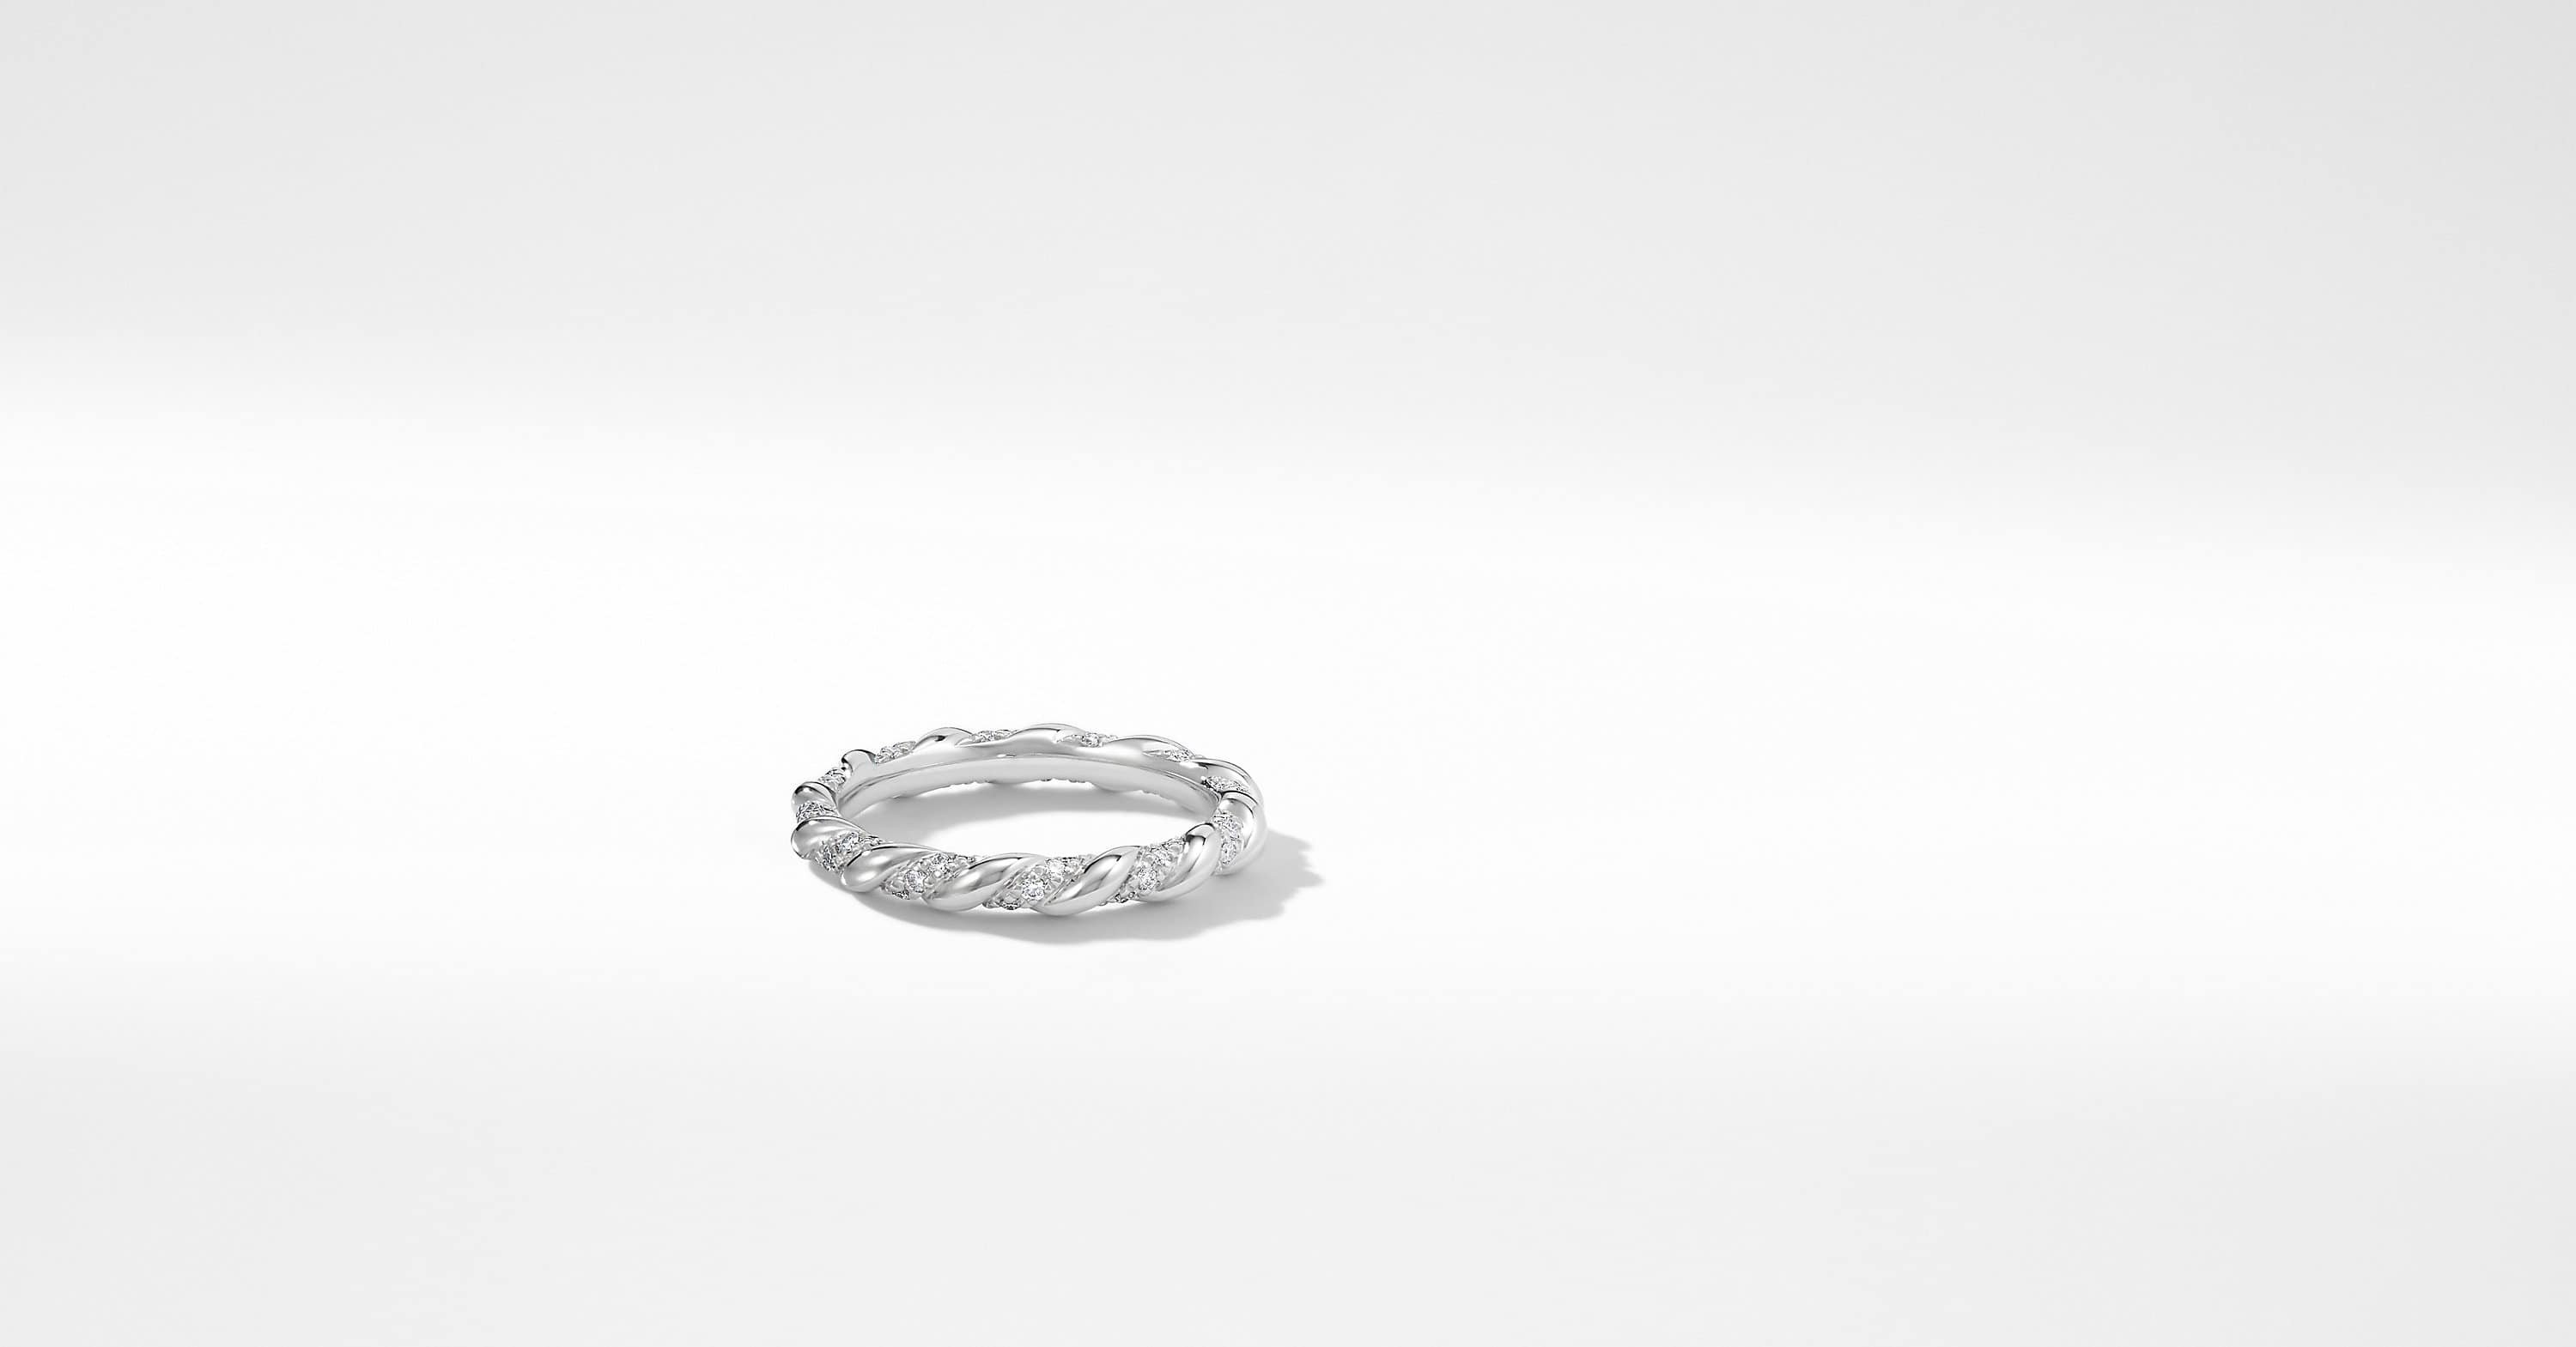 DY Unity Wedding Band with Diamonds in Platinum, 2.6mm